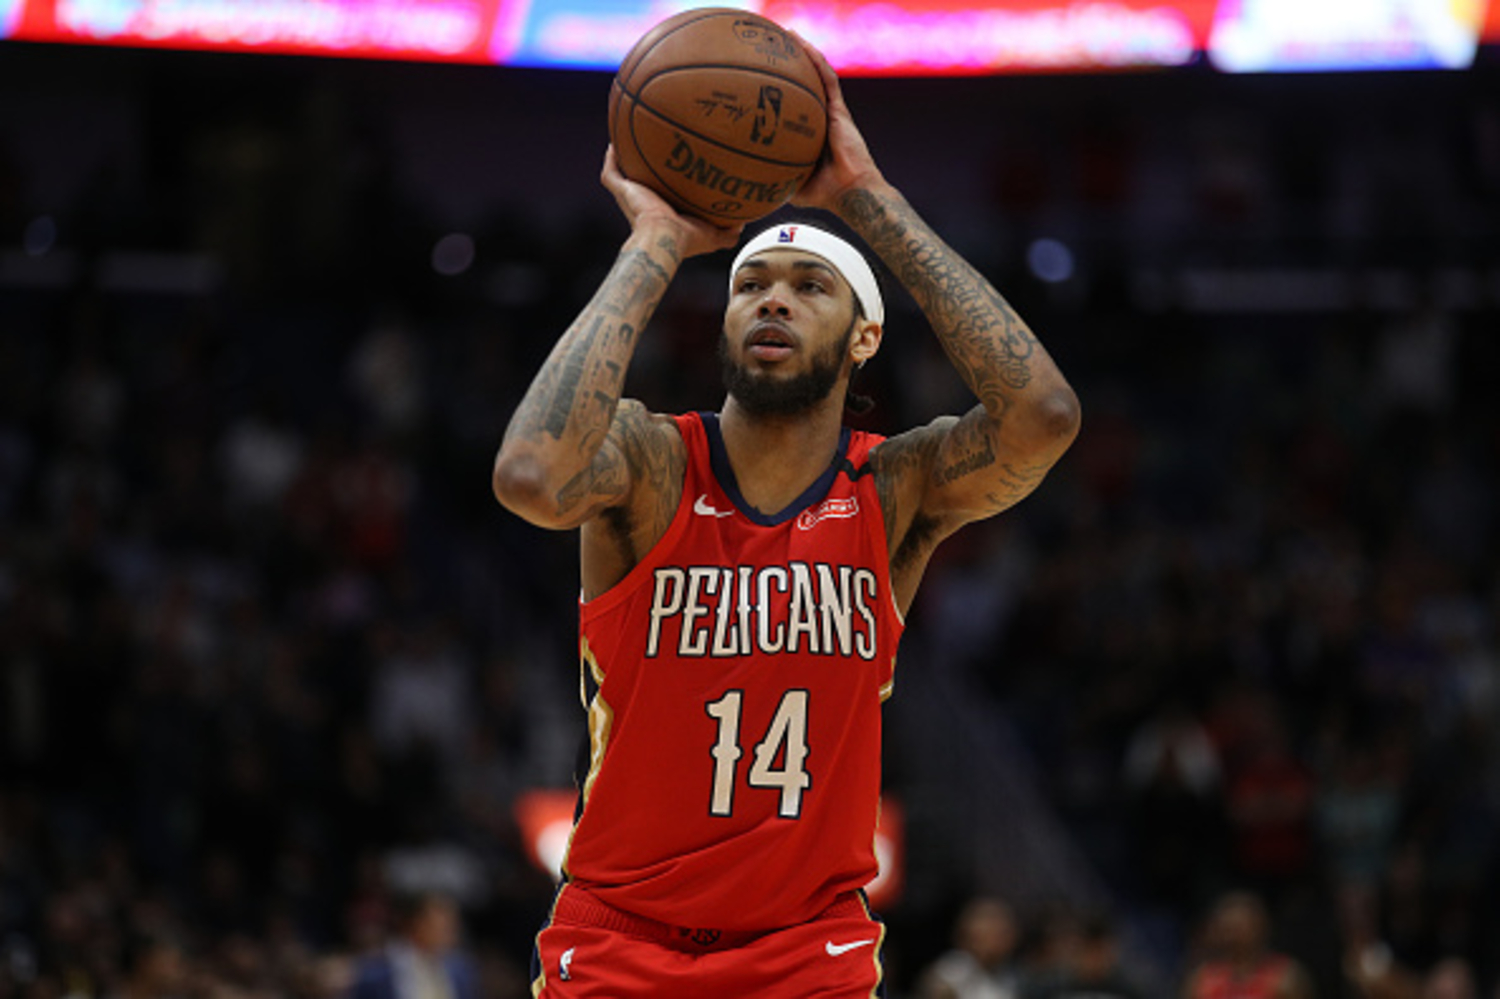 The New Orleans Pelicans Just Secured Their All-Star for the Next 5 Years